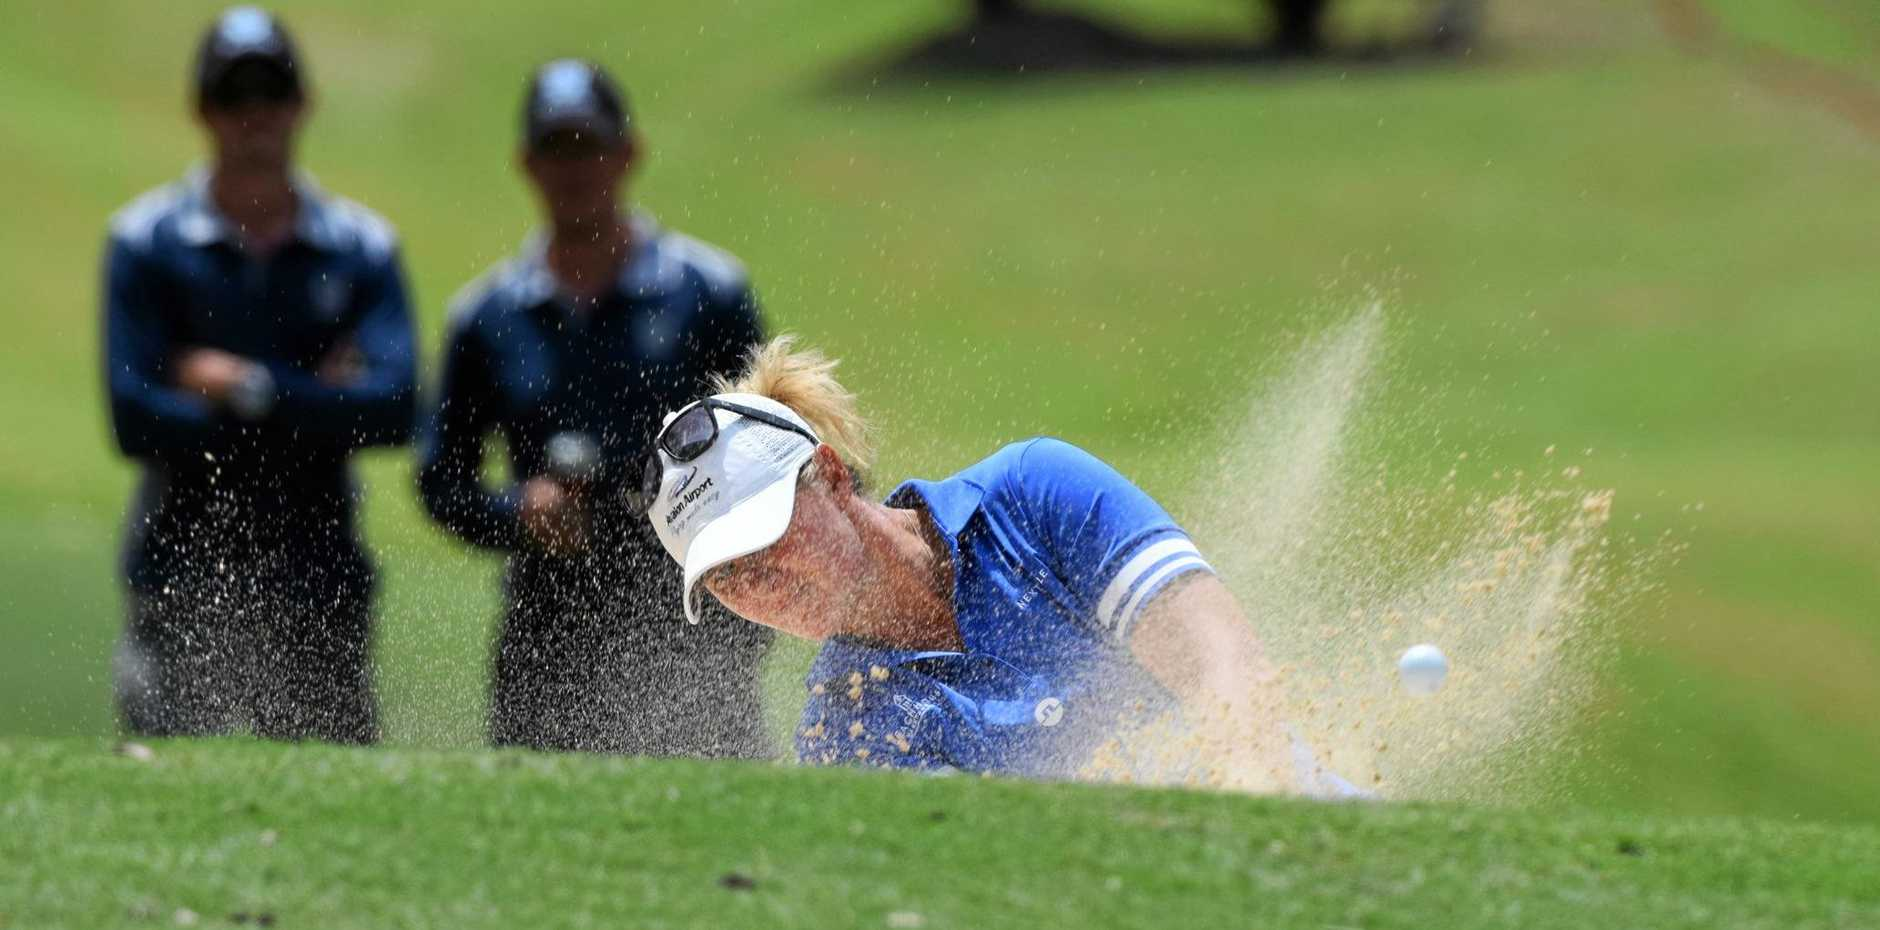 Norway's Marianne Skarpnord plays out of a bunker on the 16th hole on the final day of the 2019 Australian Ladies Classic at the Bonville Golf Resort.